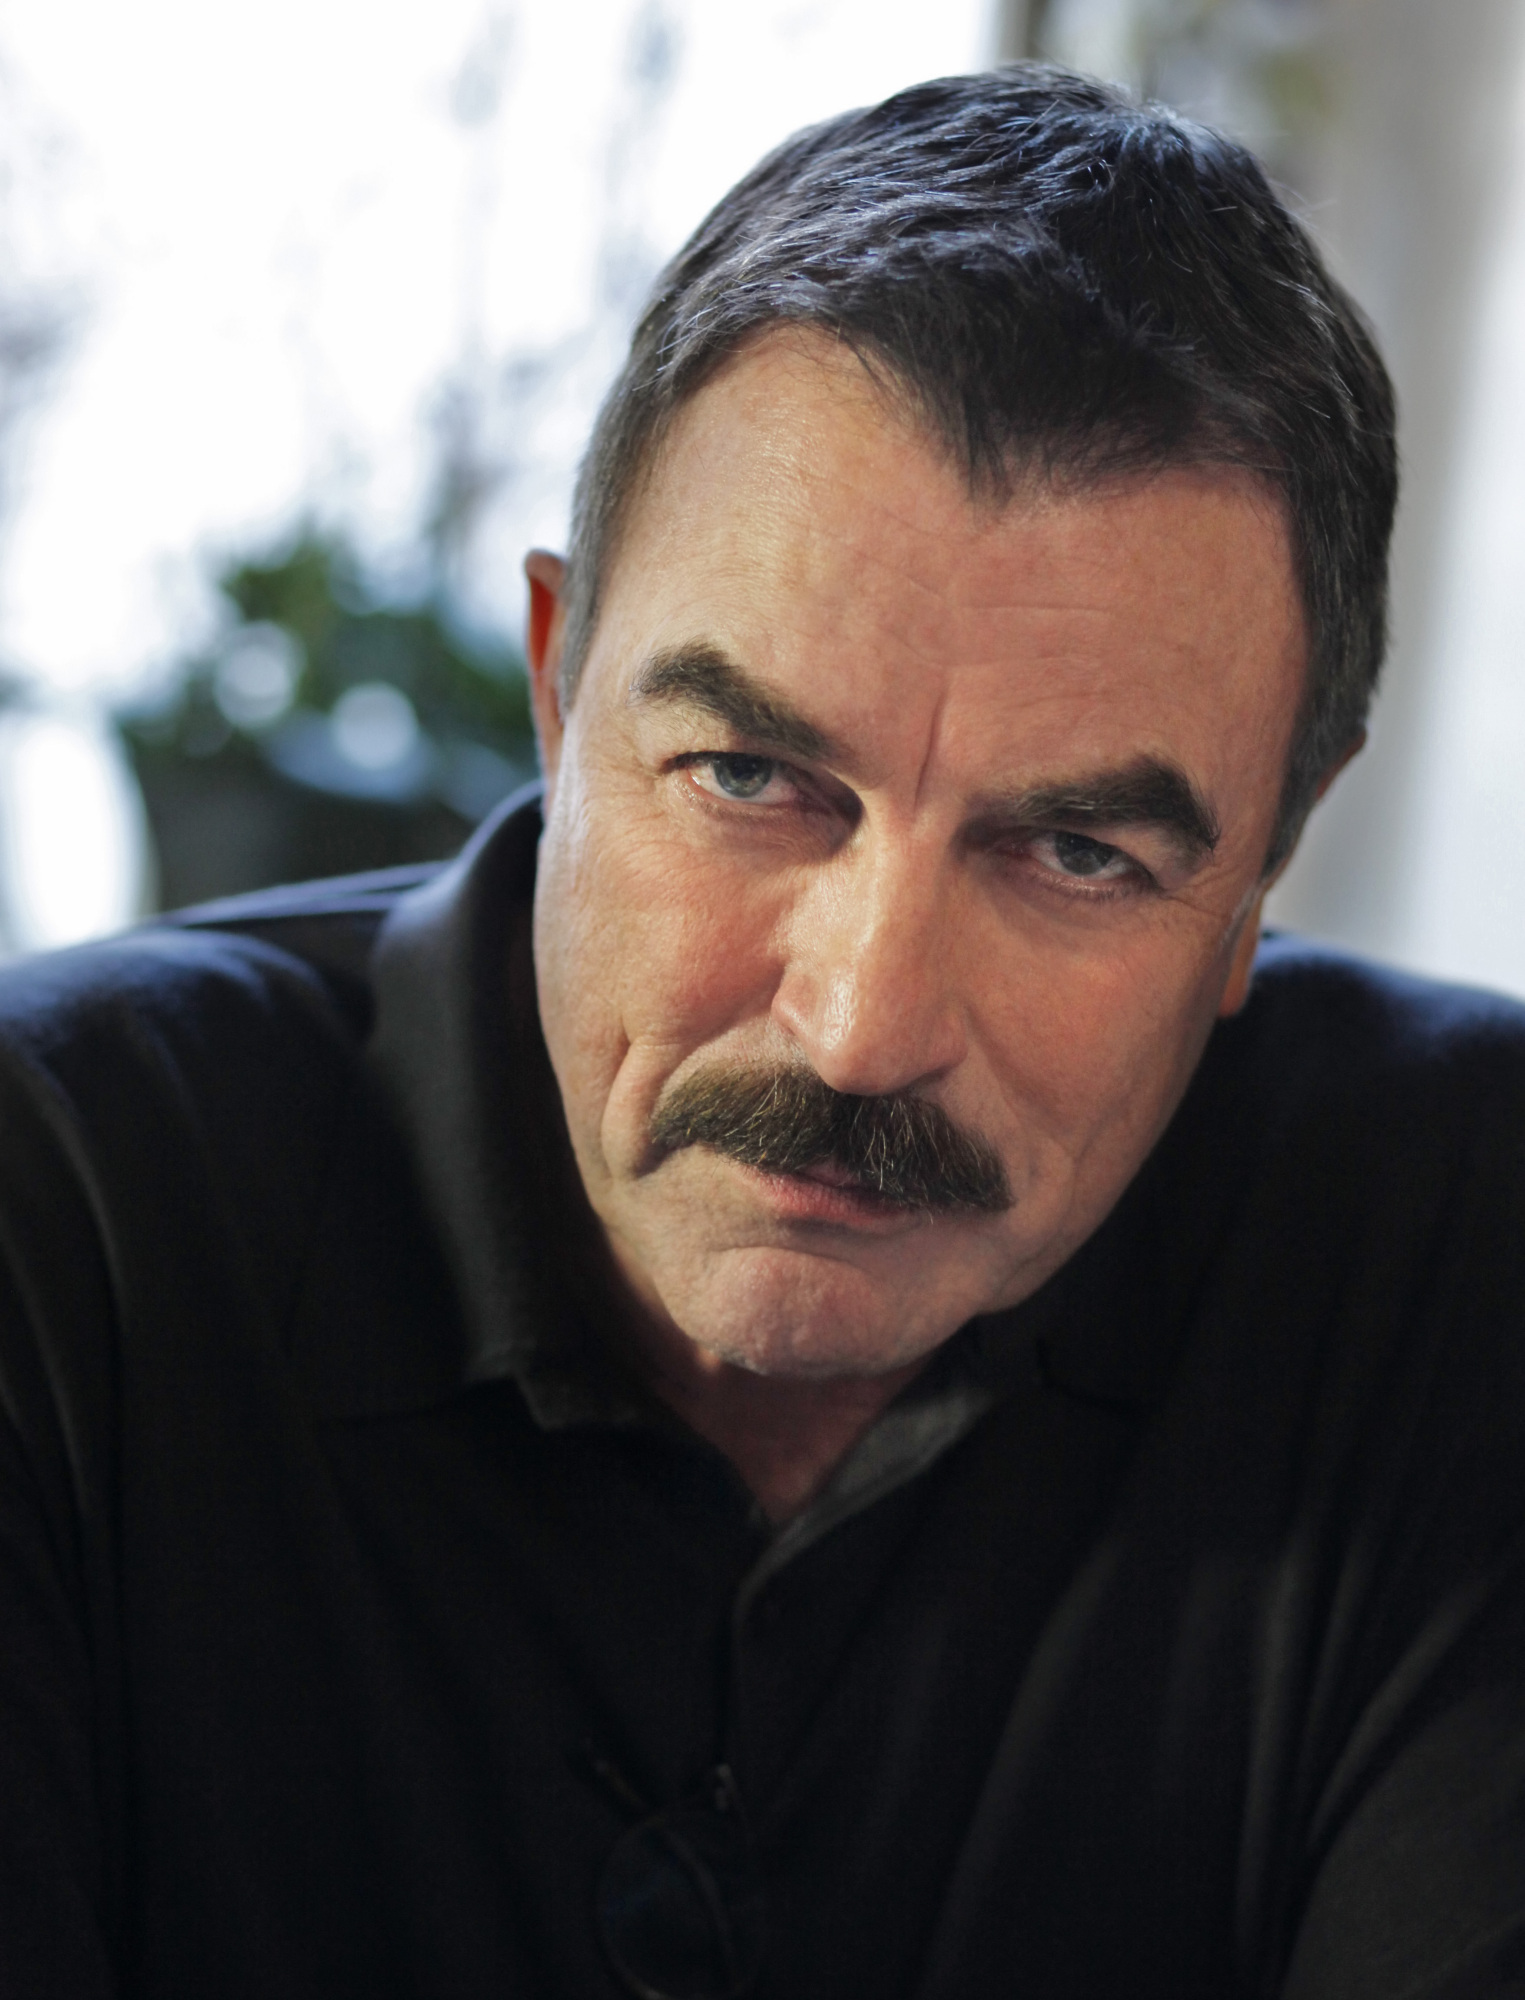 2. Tom Selleck had trouble getting work when he was younger because his voice was too high-pitched.